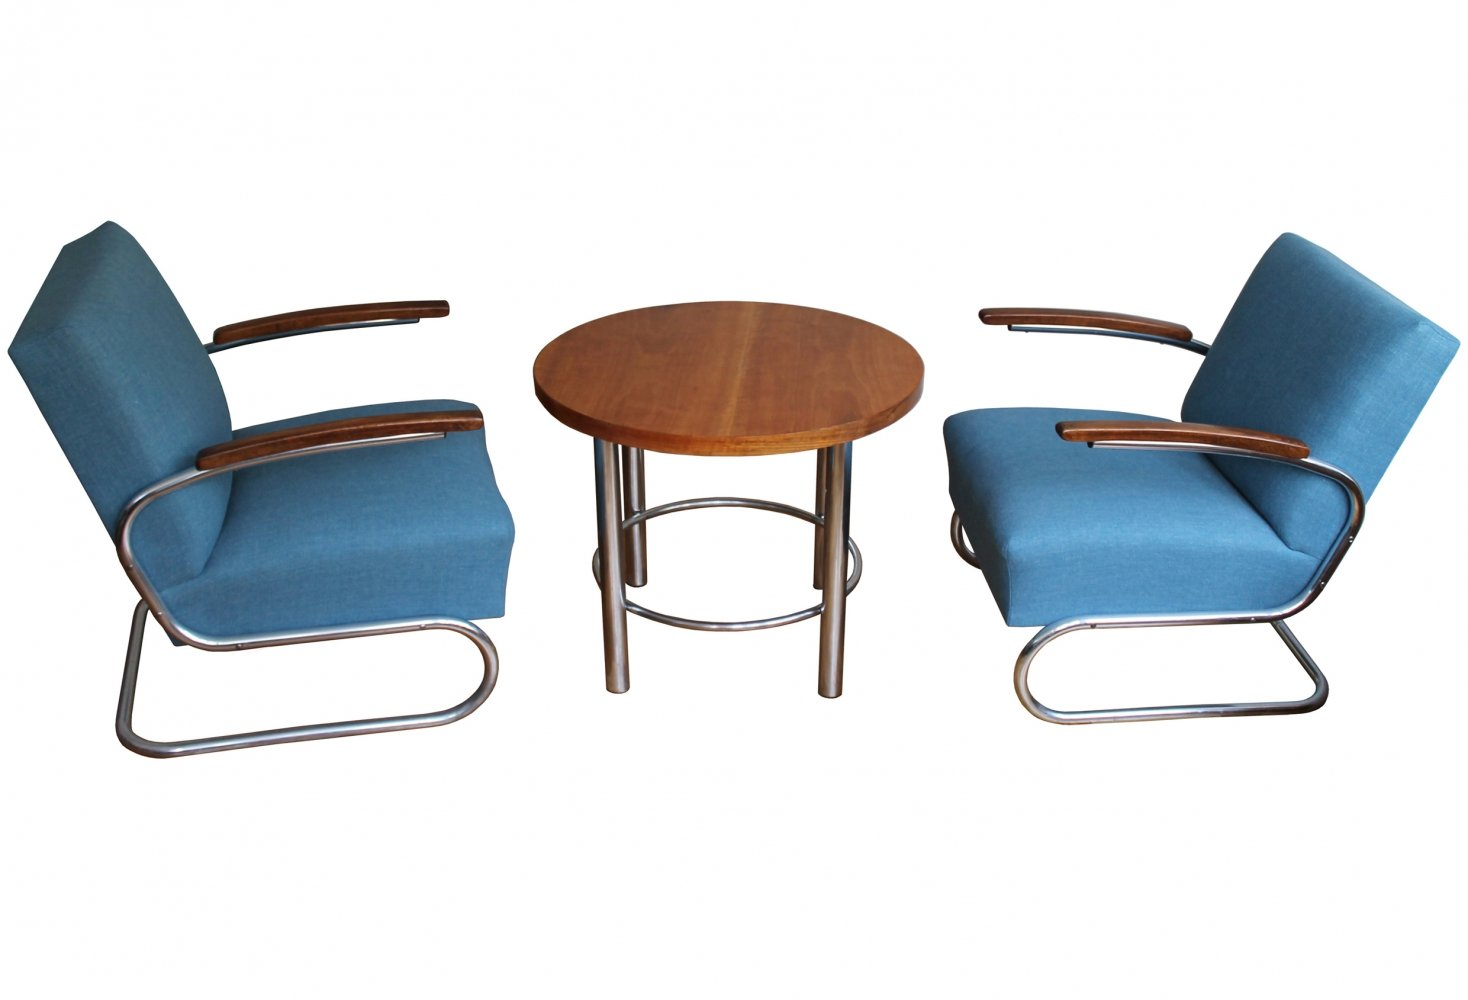 Modernist Lounge Chairs with Coffee Table set by Walter Schneider & Paul Hahn